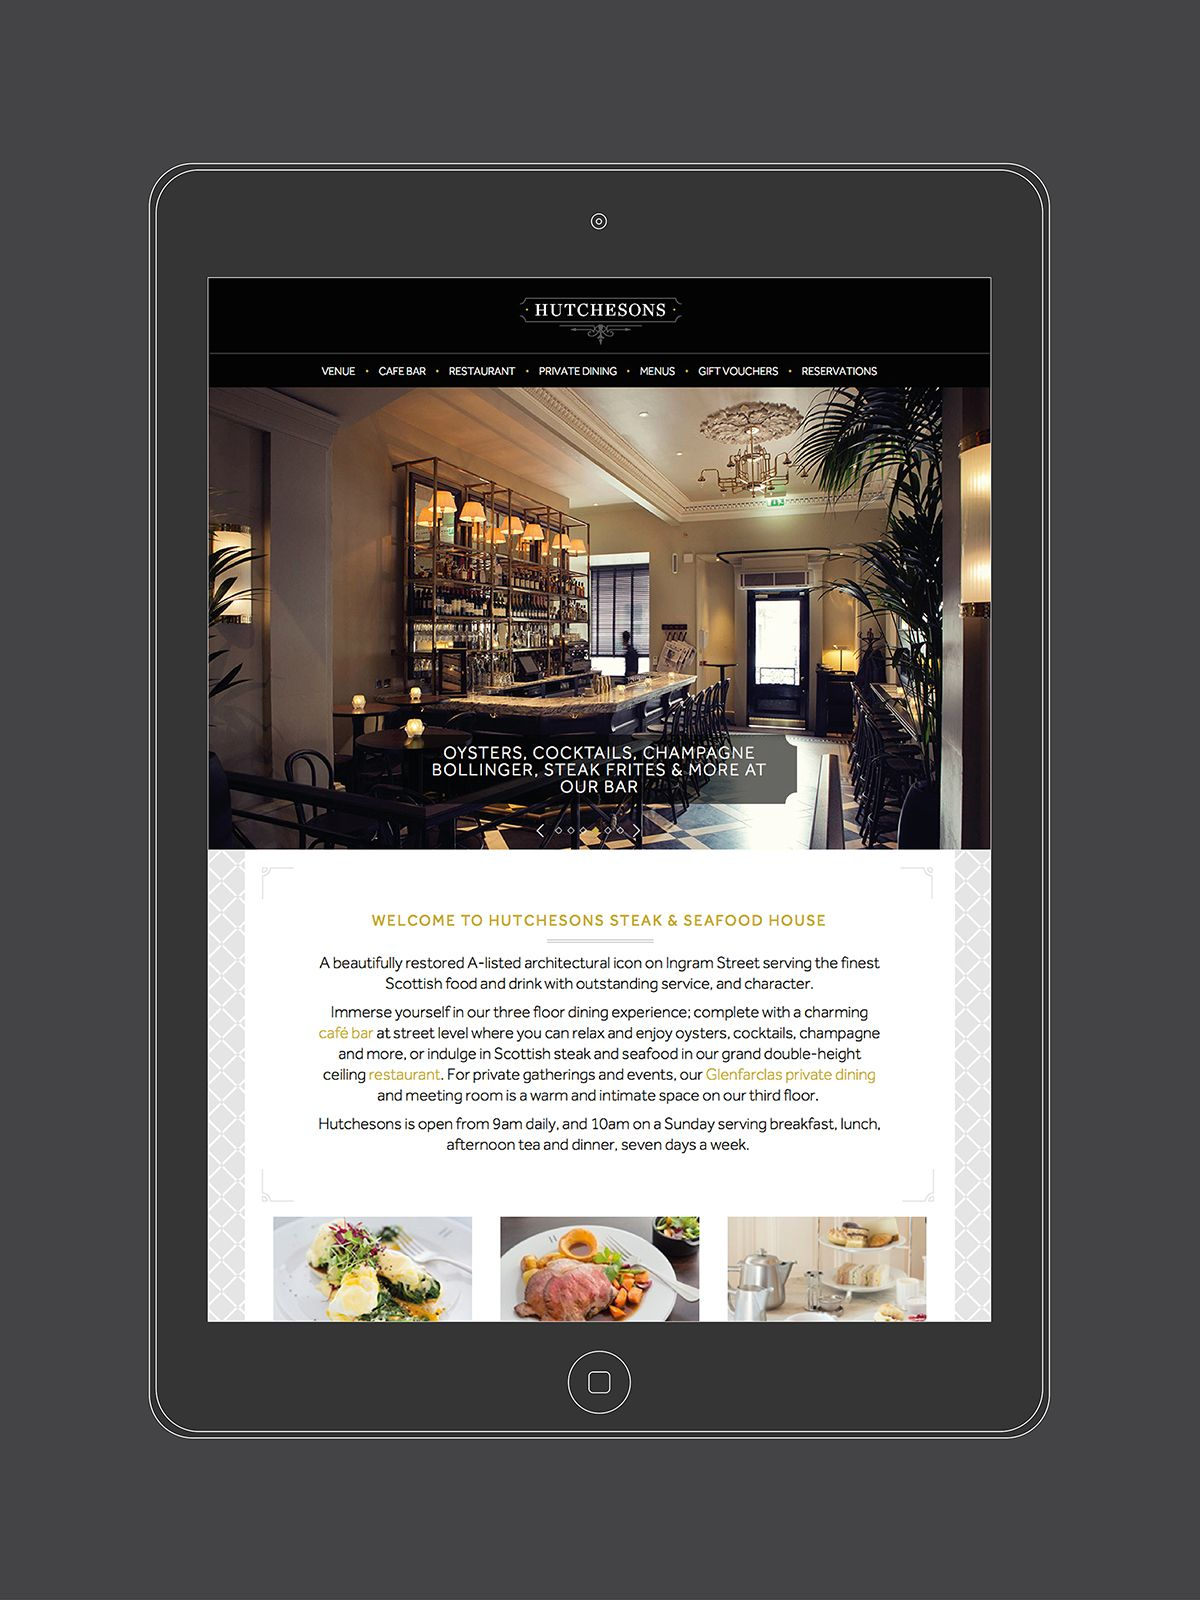 Hutchesons Bar and Restaurant branding and website